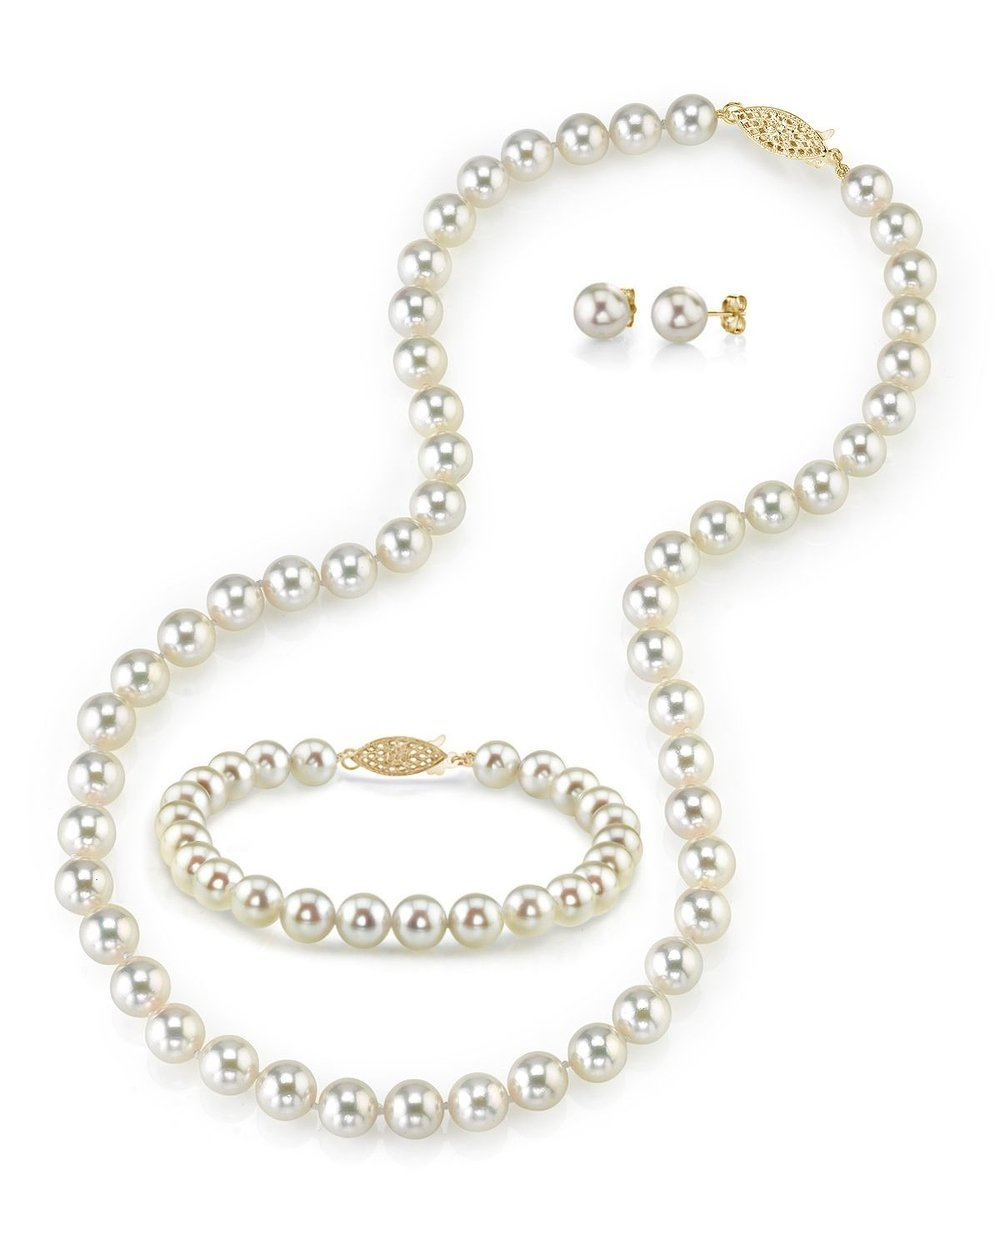 THE PEARL SOURCE 14K Gold 6-6.5mm AAA Quality Round White Akoya Cultured Pearl Necklace, Bracelet & Earrings Set in 17'' Princess Length for Women